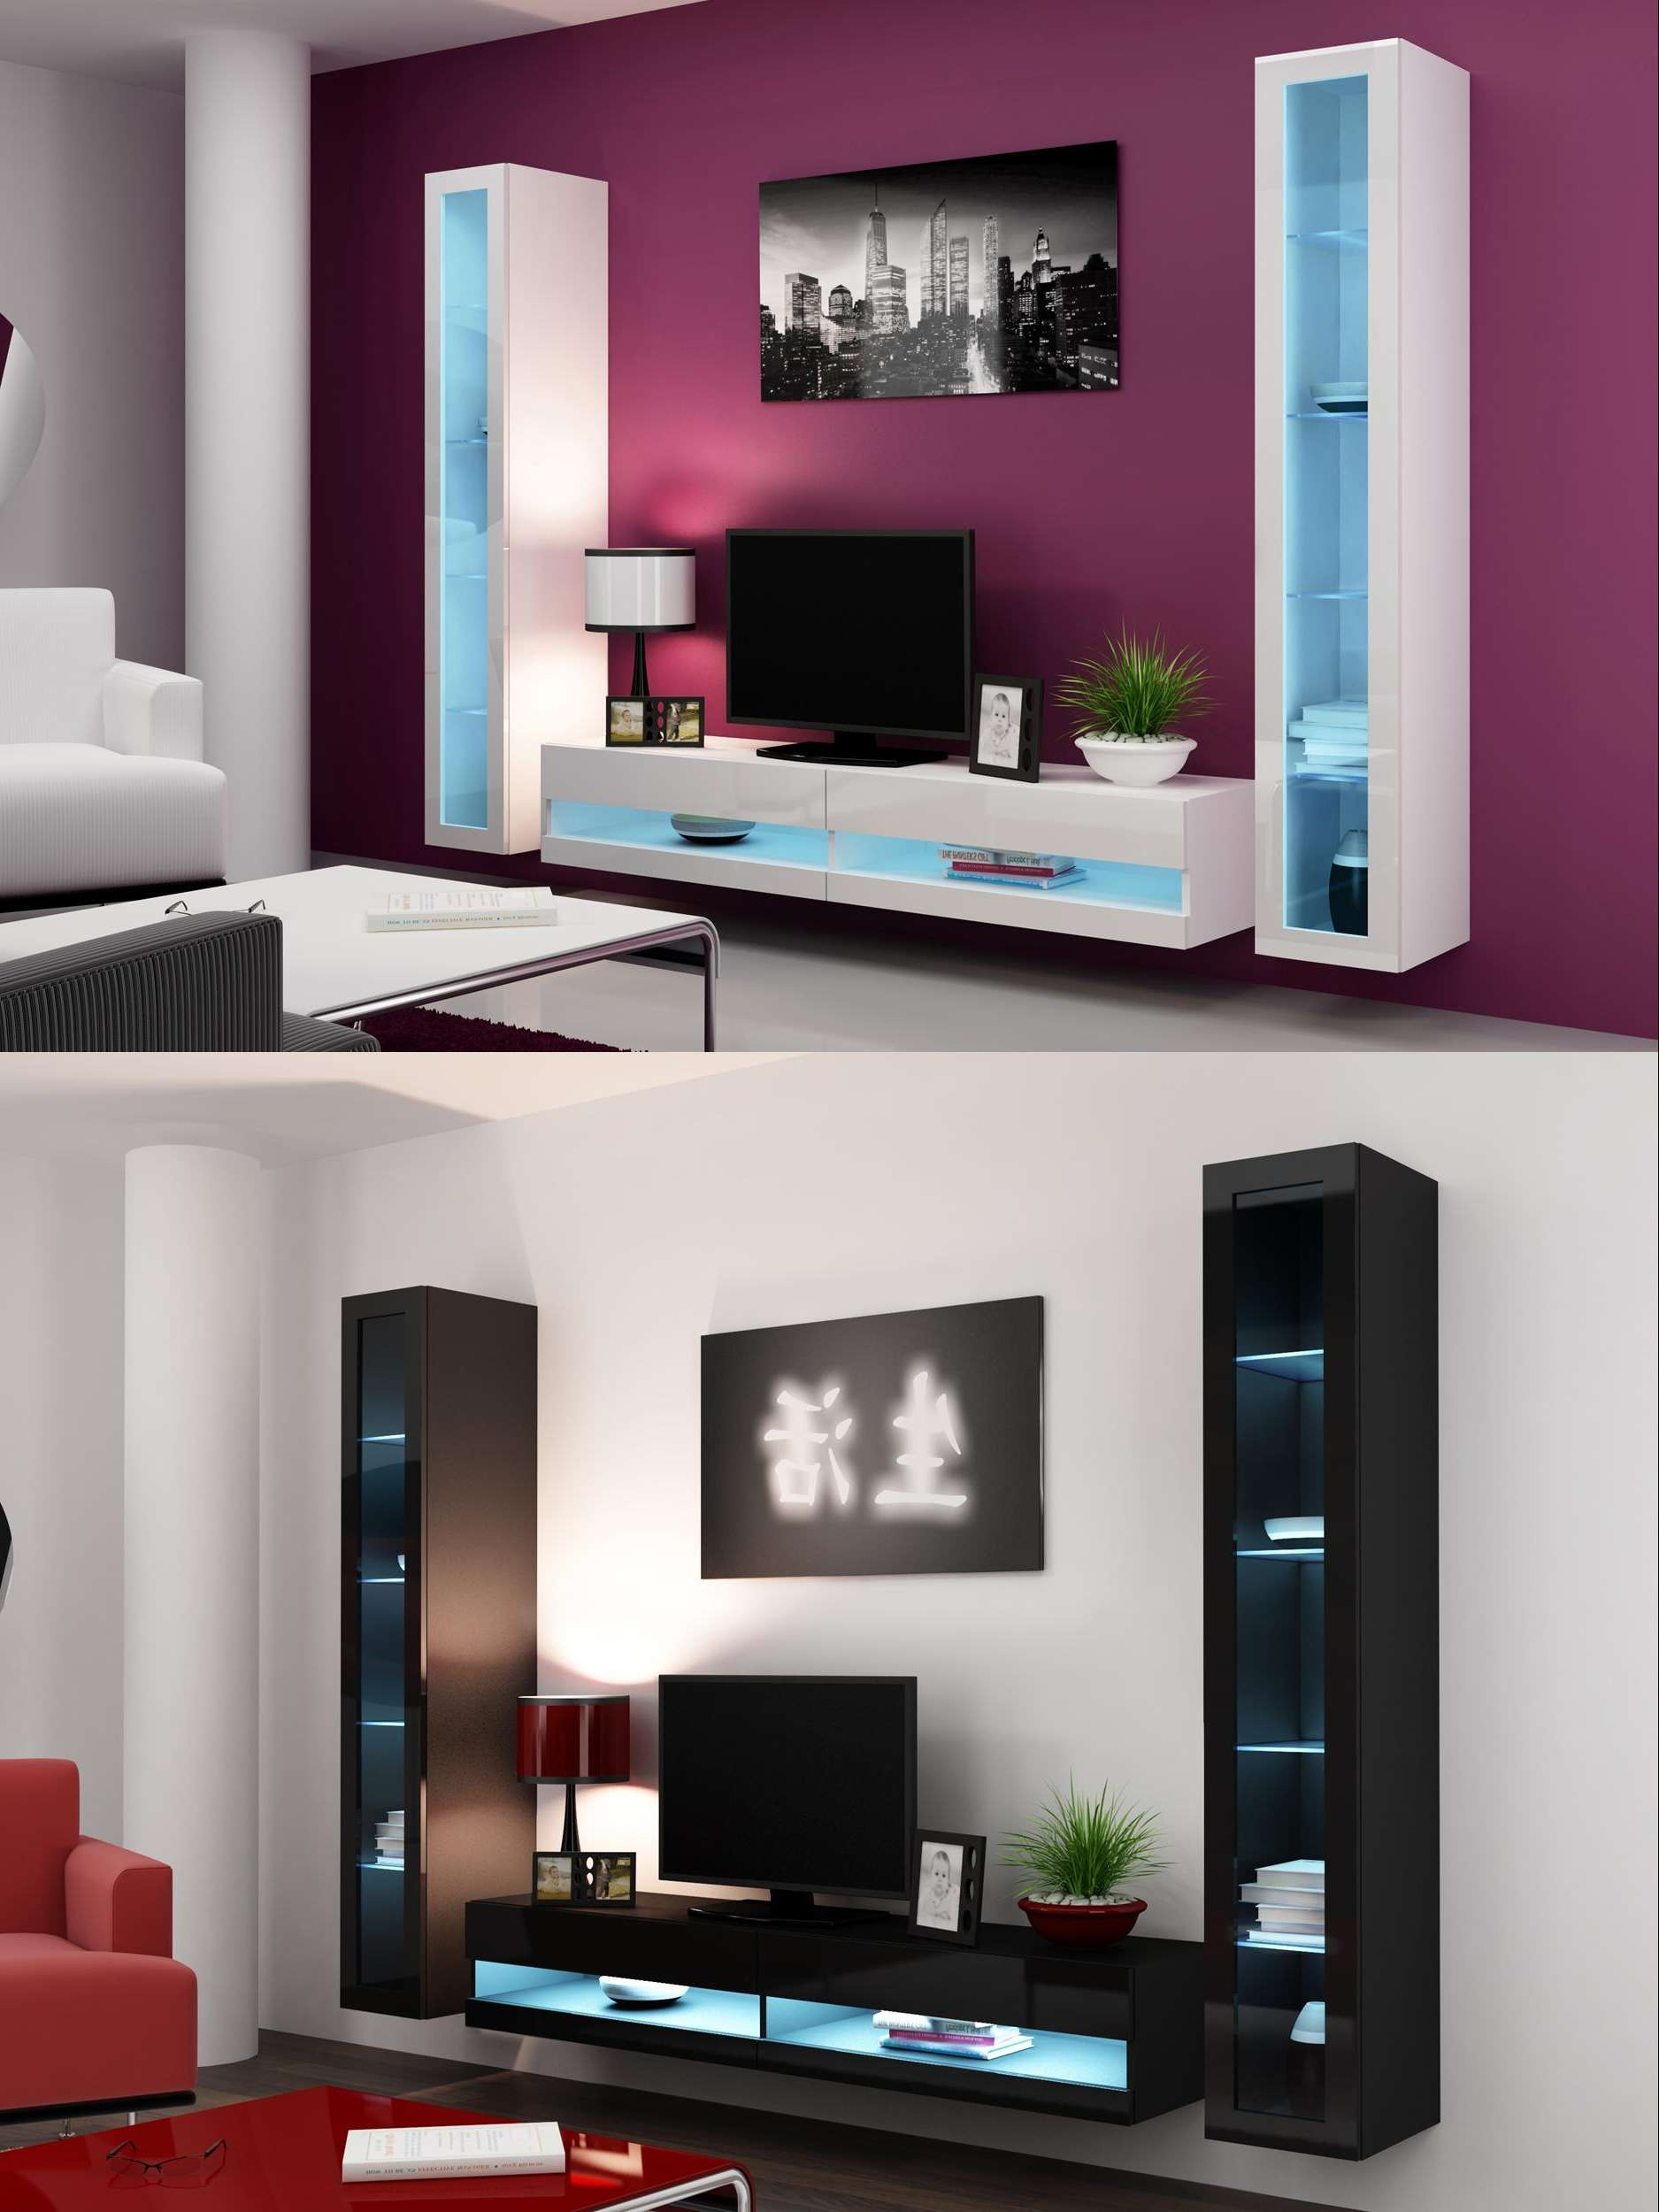 Tv Stand Designs On Wall : Ideas of led tv cabinets